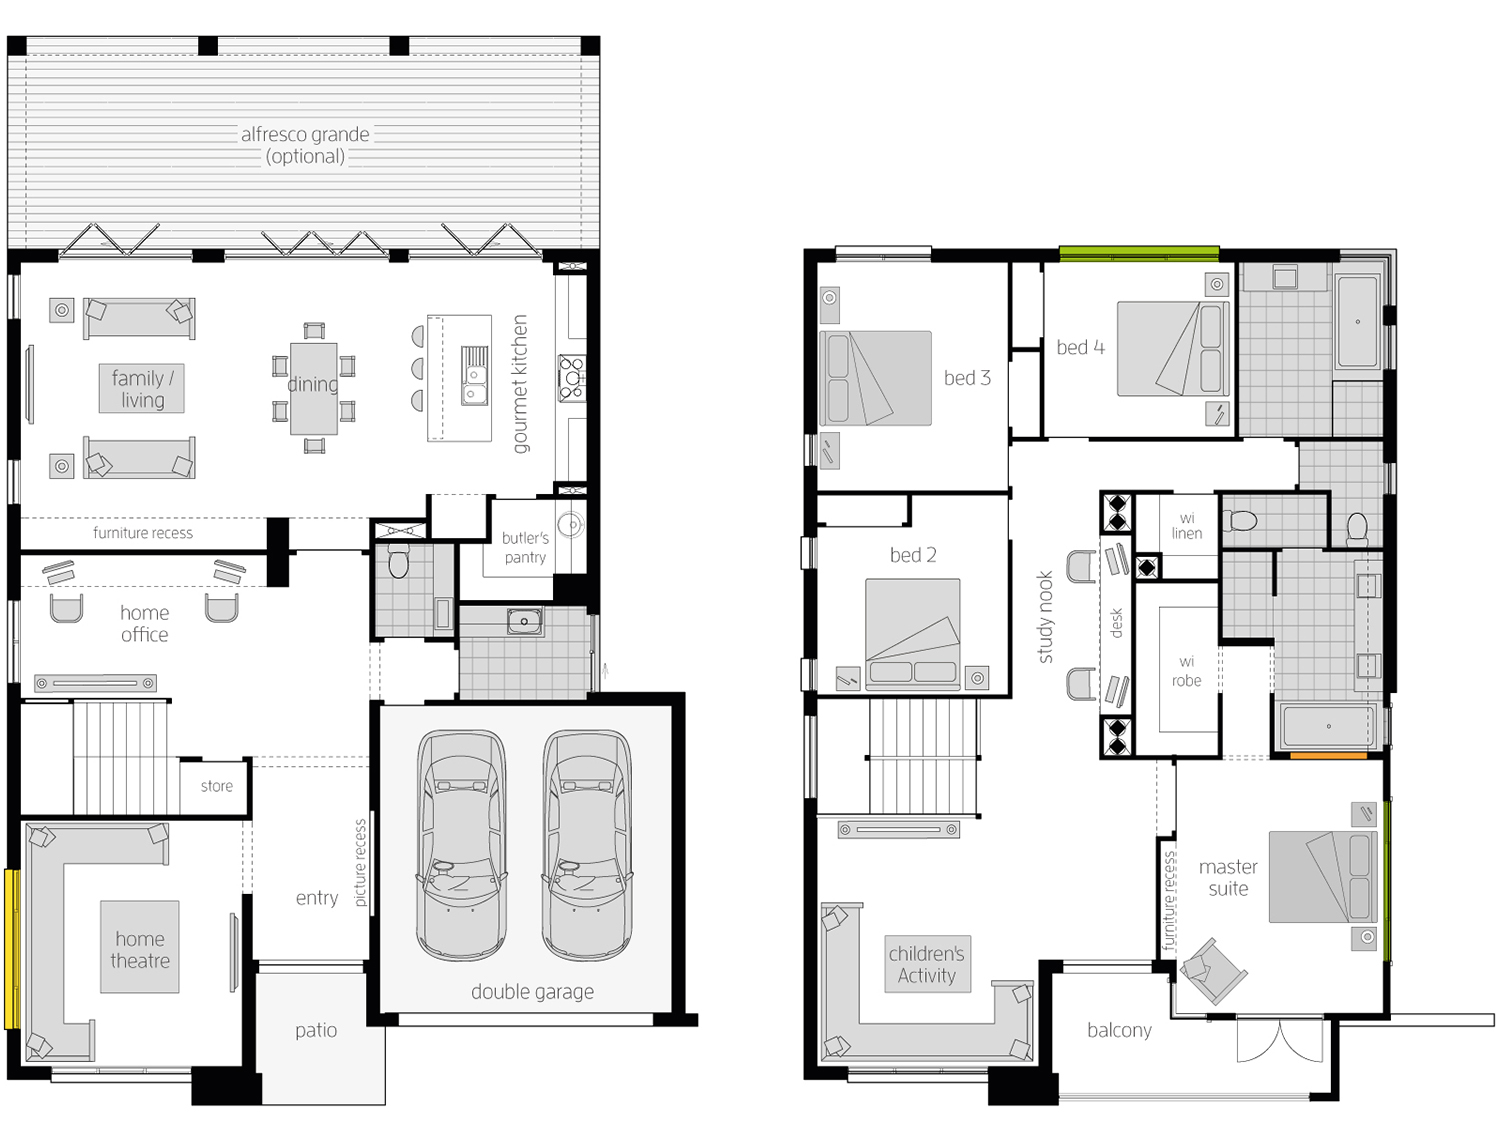 Floor Plan - Bridgetown 43 Luxury Two Storey Home - McDonald Jones